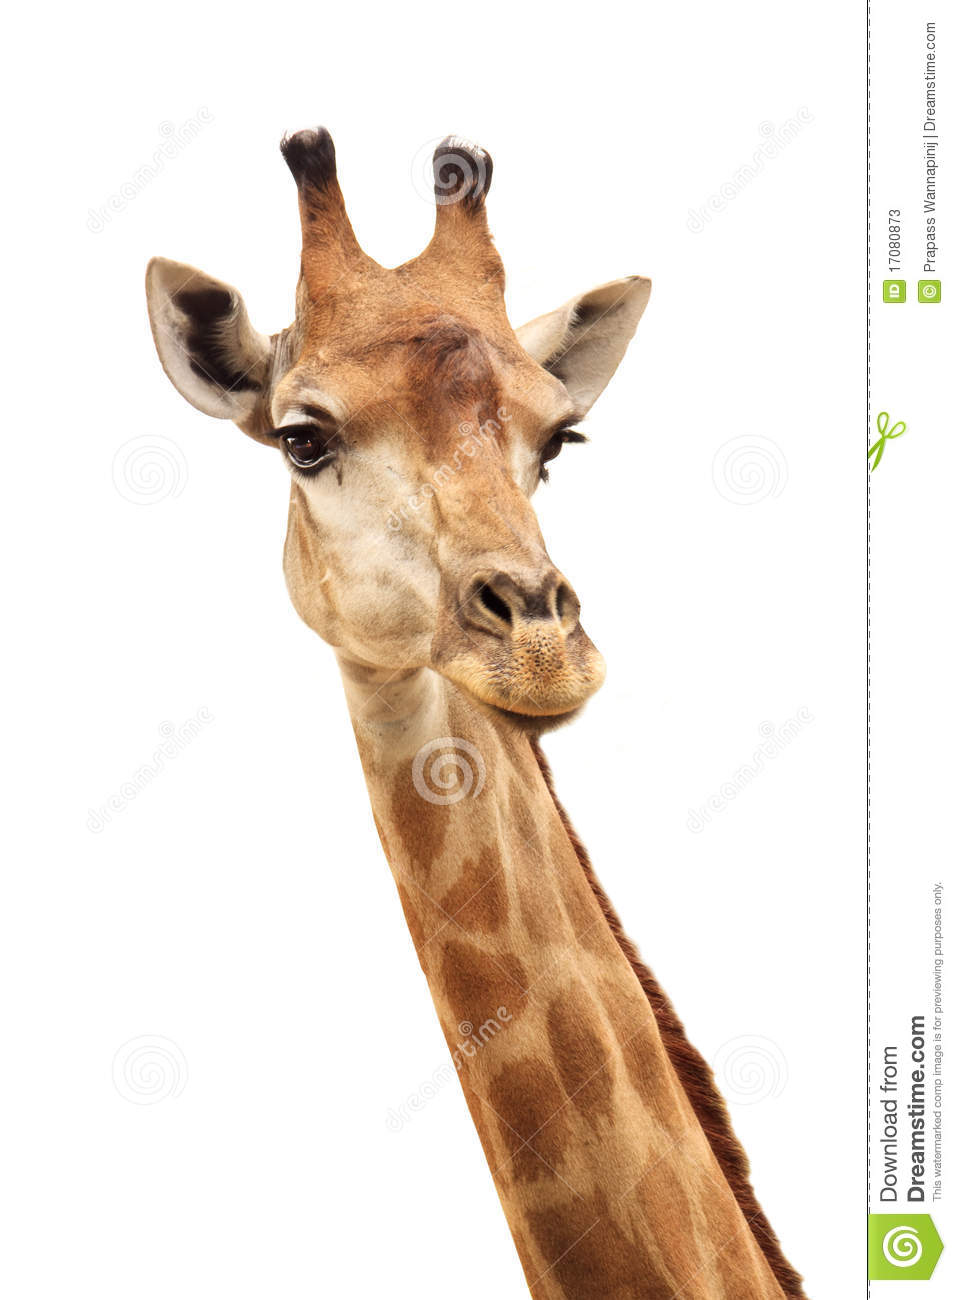 giraffe head white background - photo #19